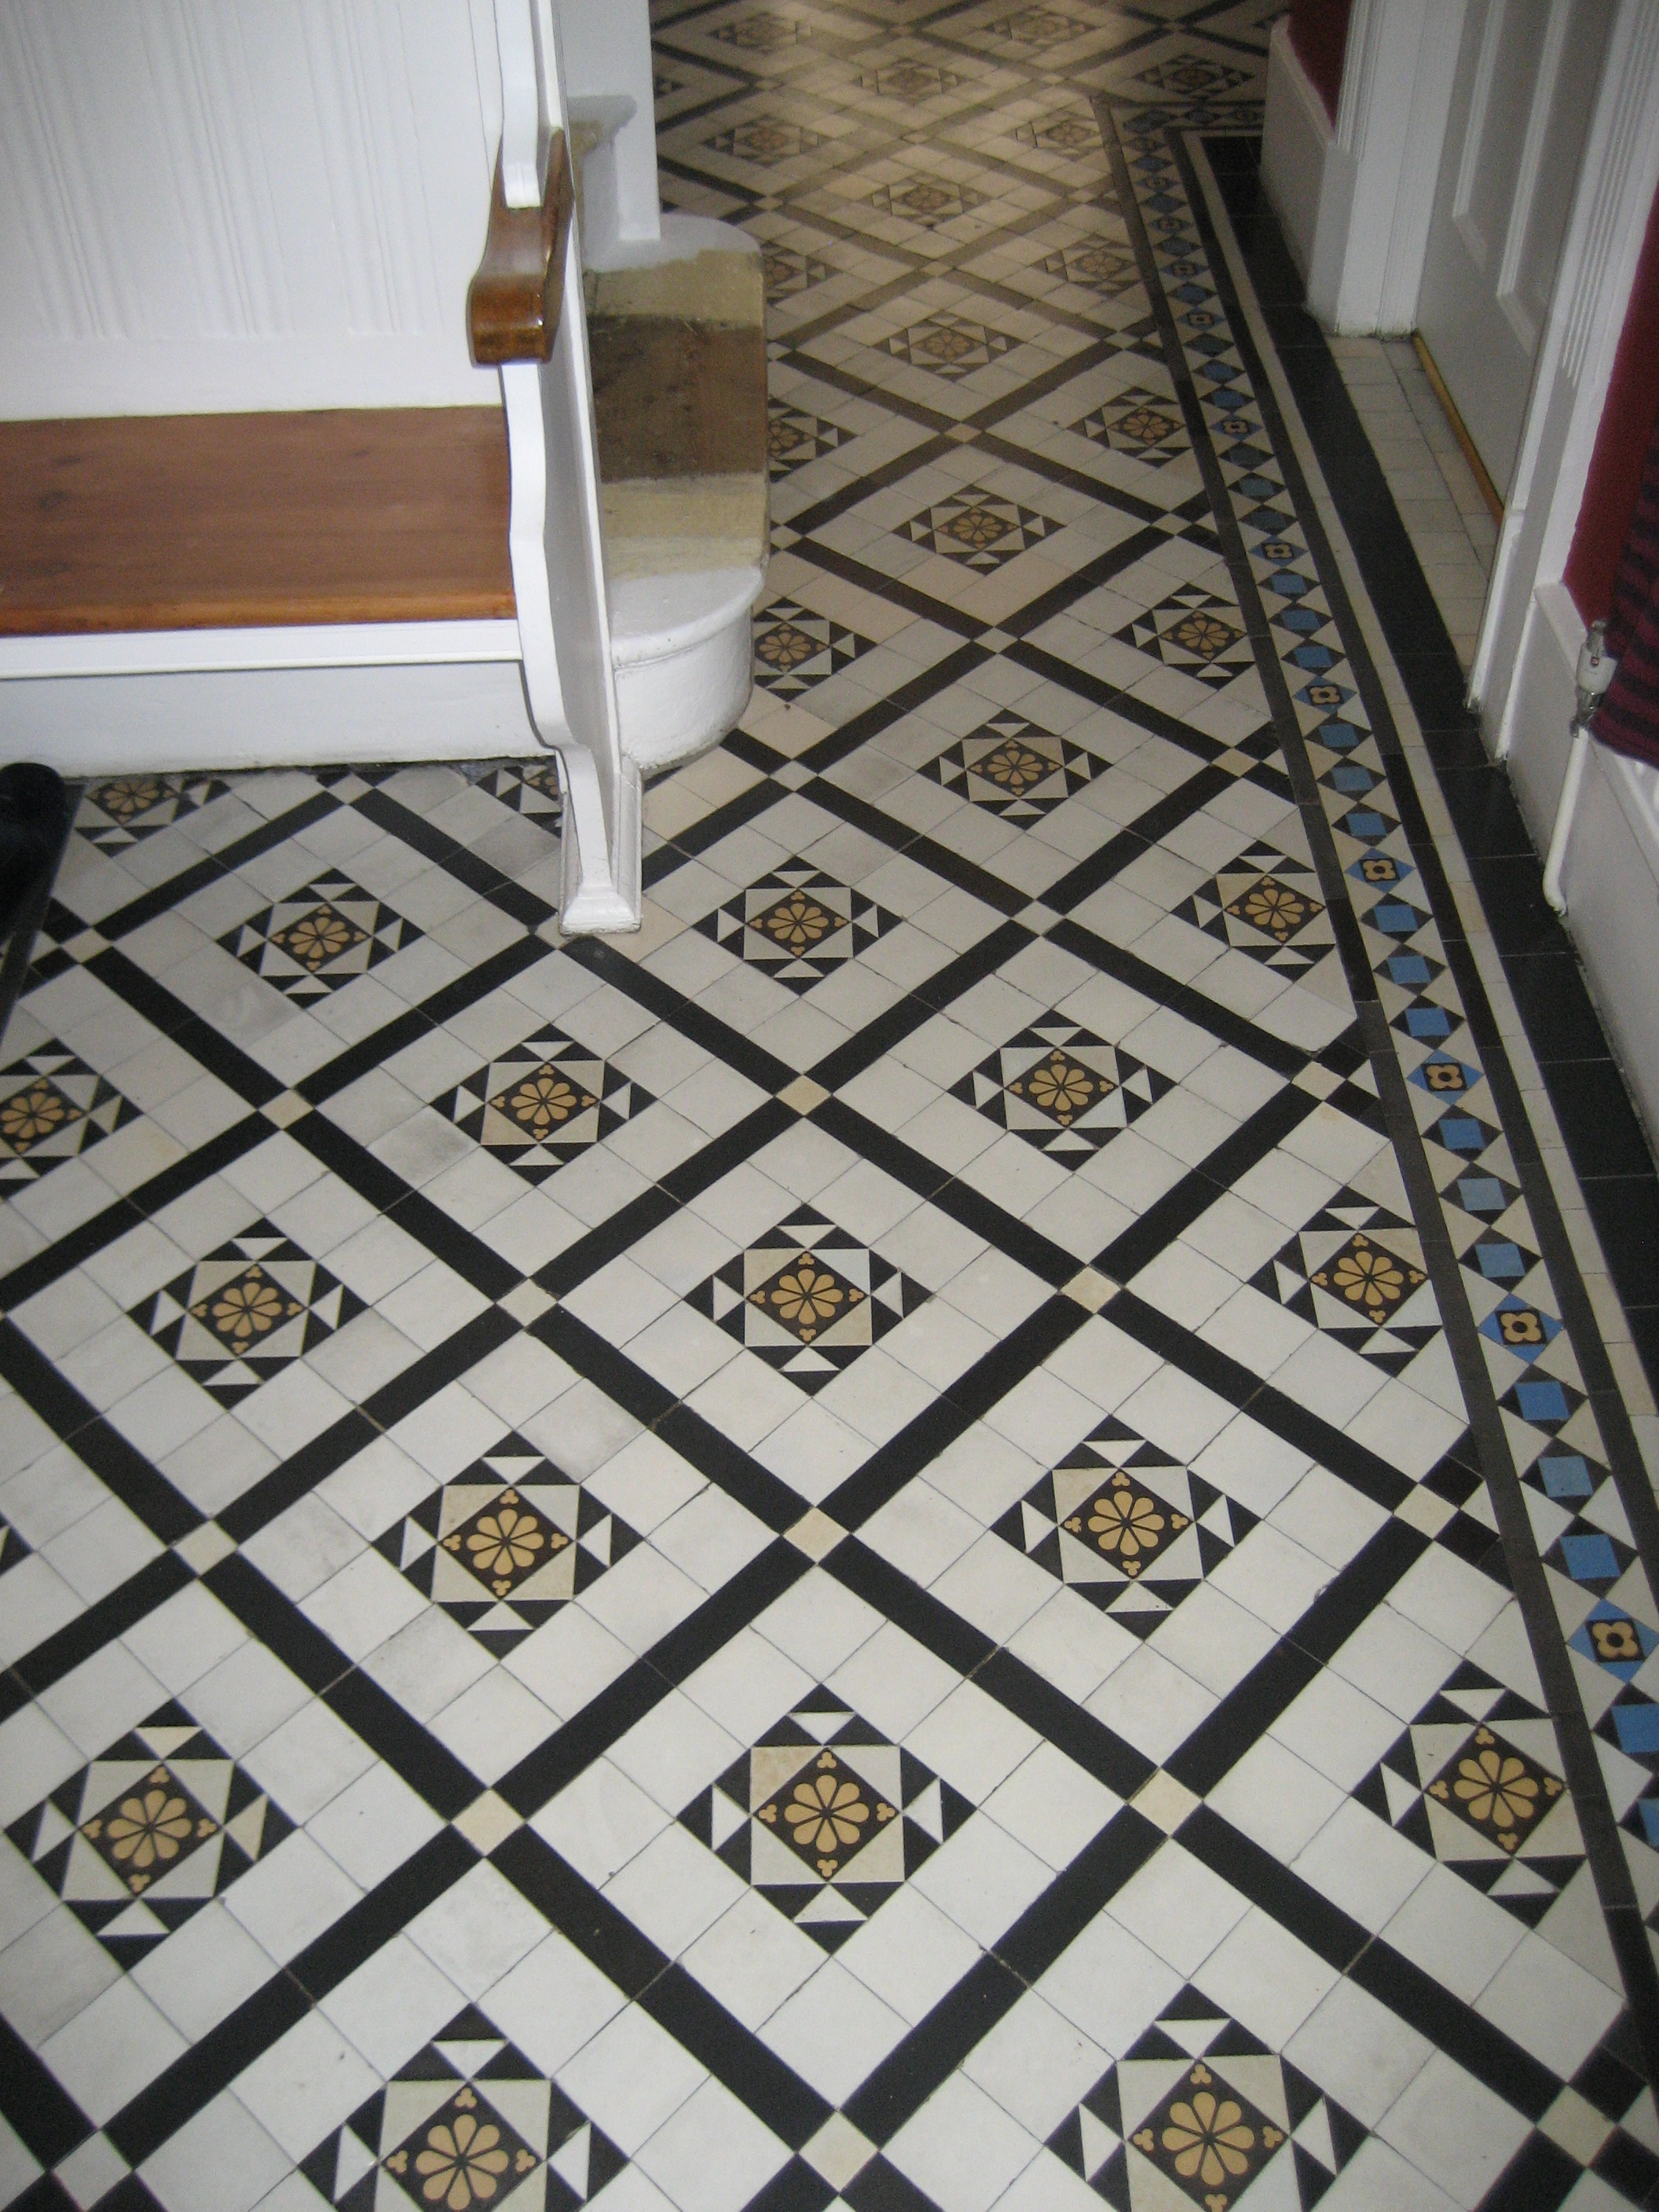 Ceramic Tiles | Palmers Green Jewel in the North